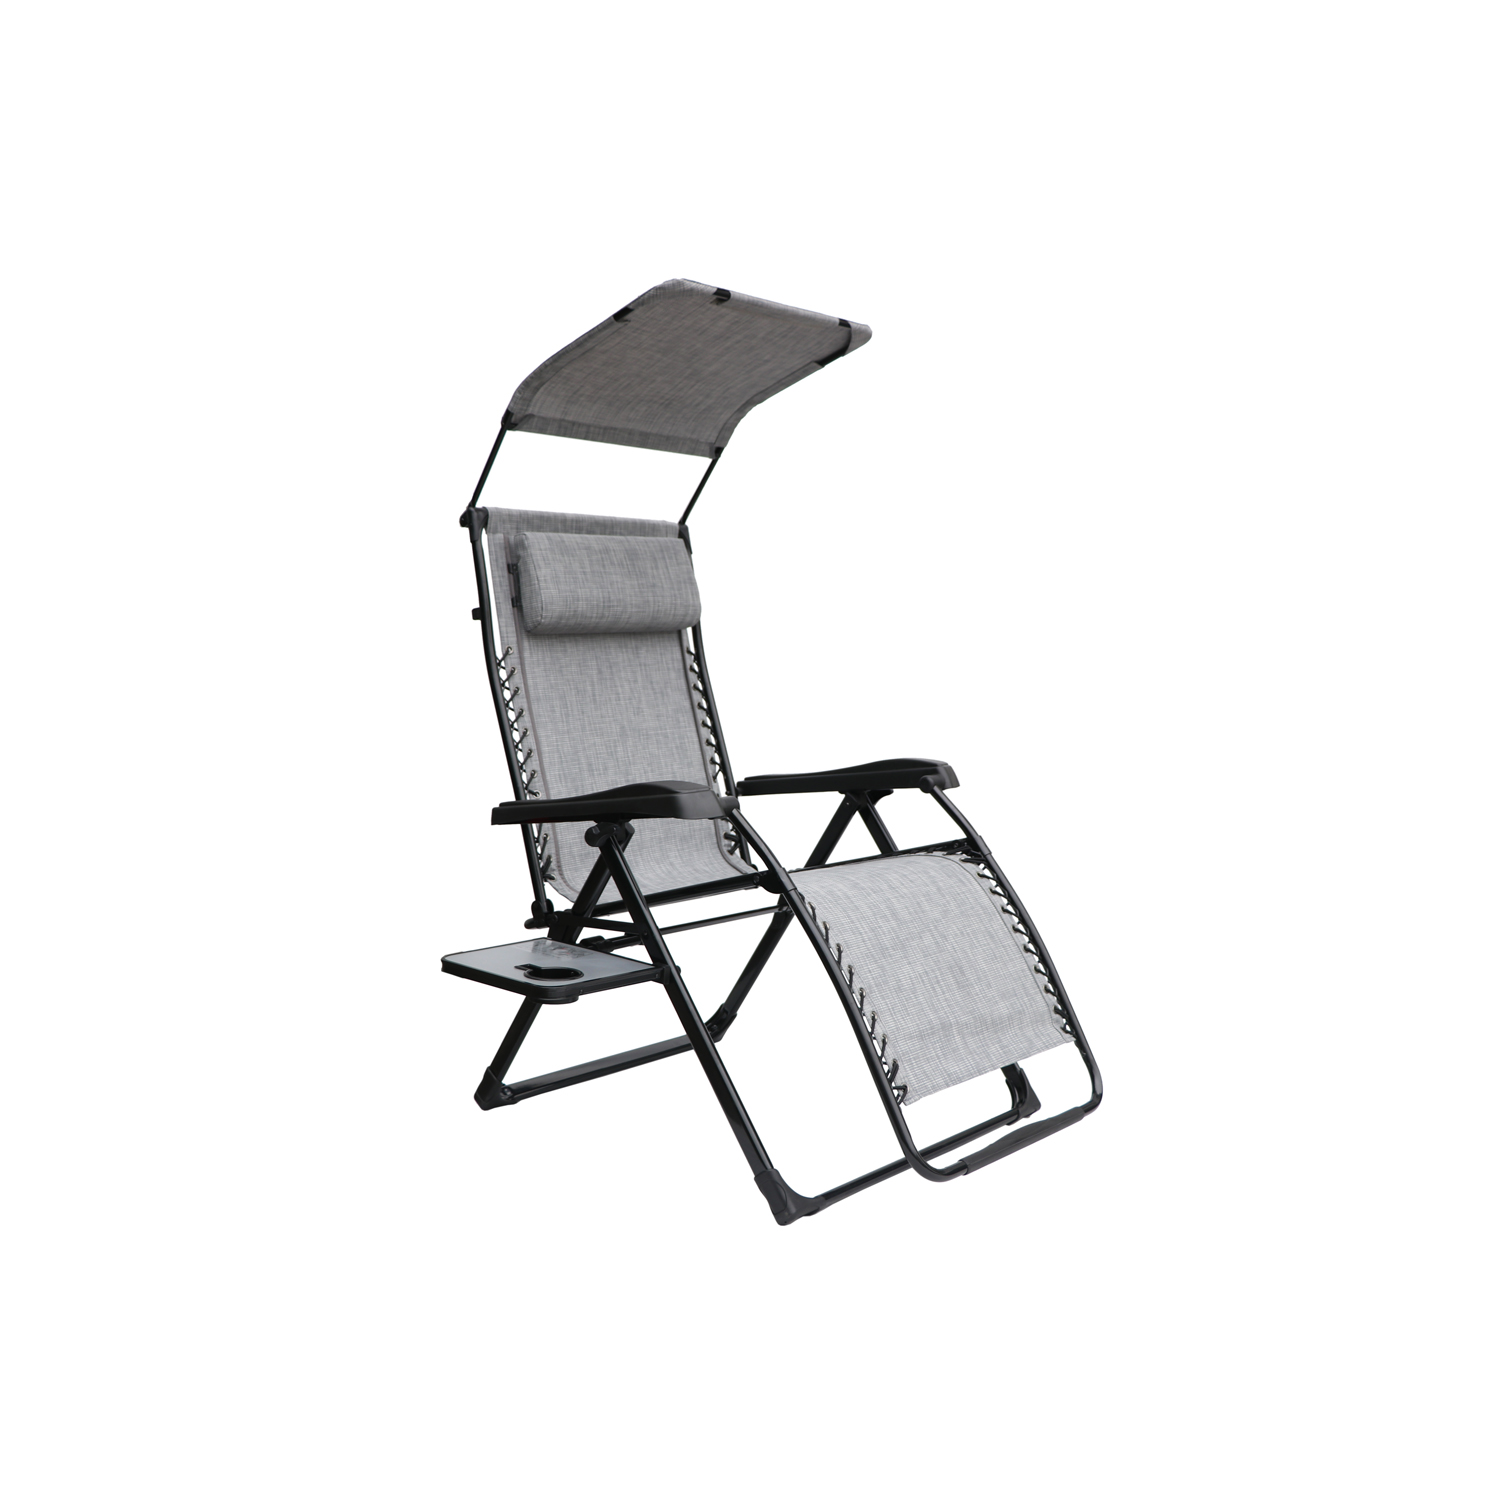 Ordinaire Mainstays Extra Large Zero Gravity Chair With Side Table And Canopy, Gray    Walmart.com